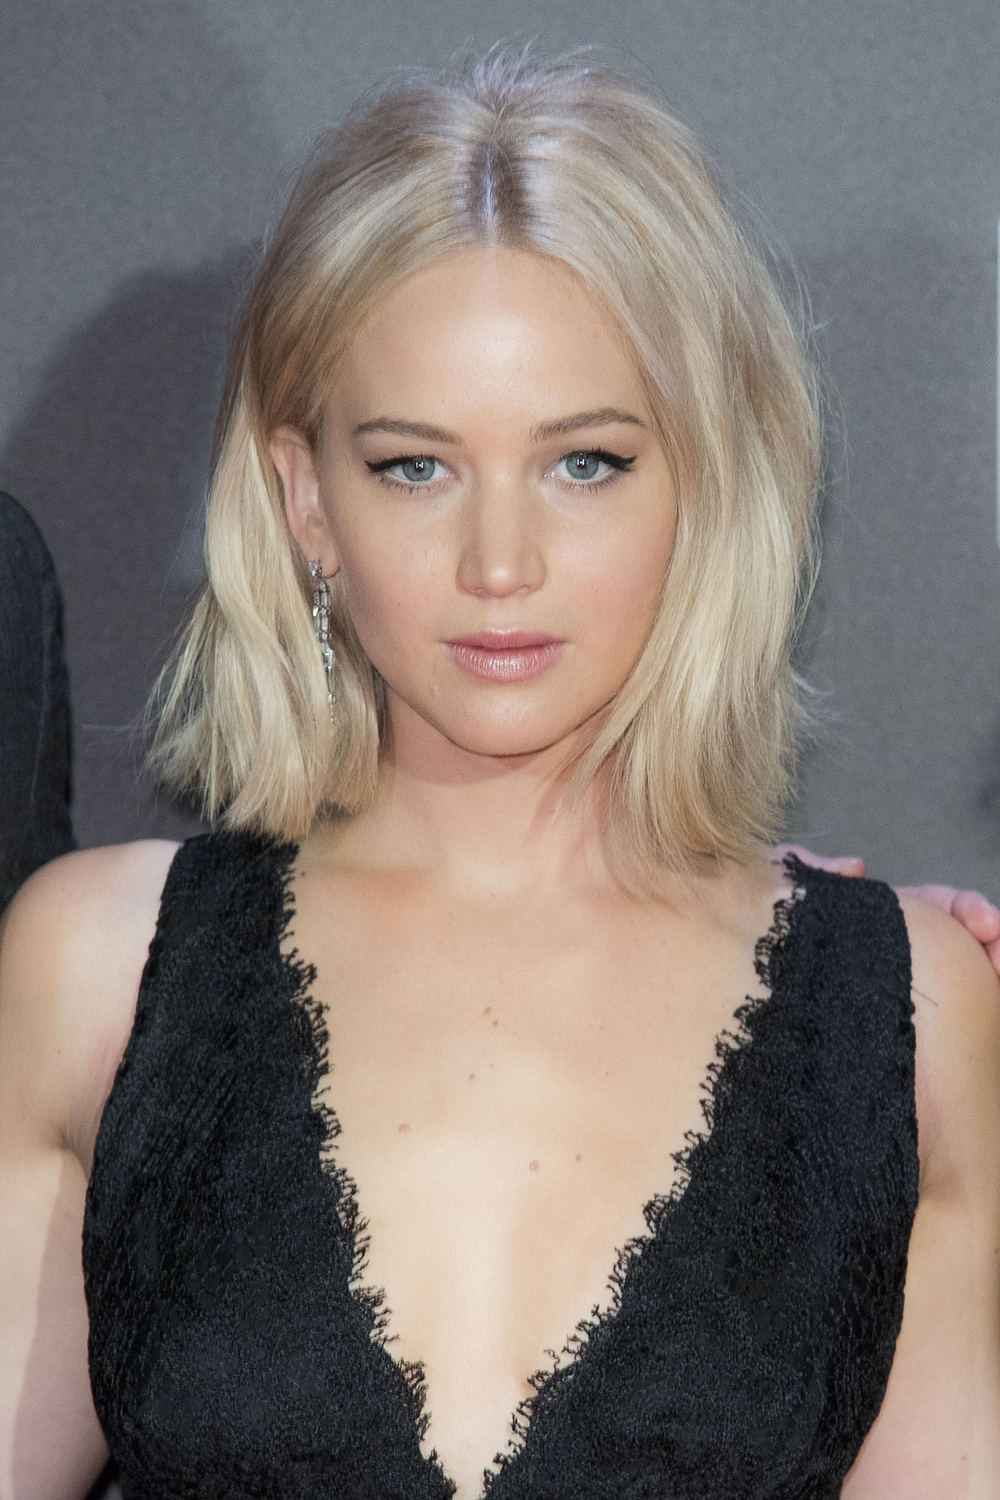 Astonishing Bob Hairstyles The Best Celebrity Bobs To Inspire Your Hairdo Hairstyle Inspiration Daily Dogsangcom